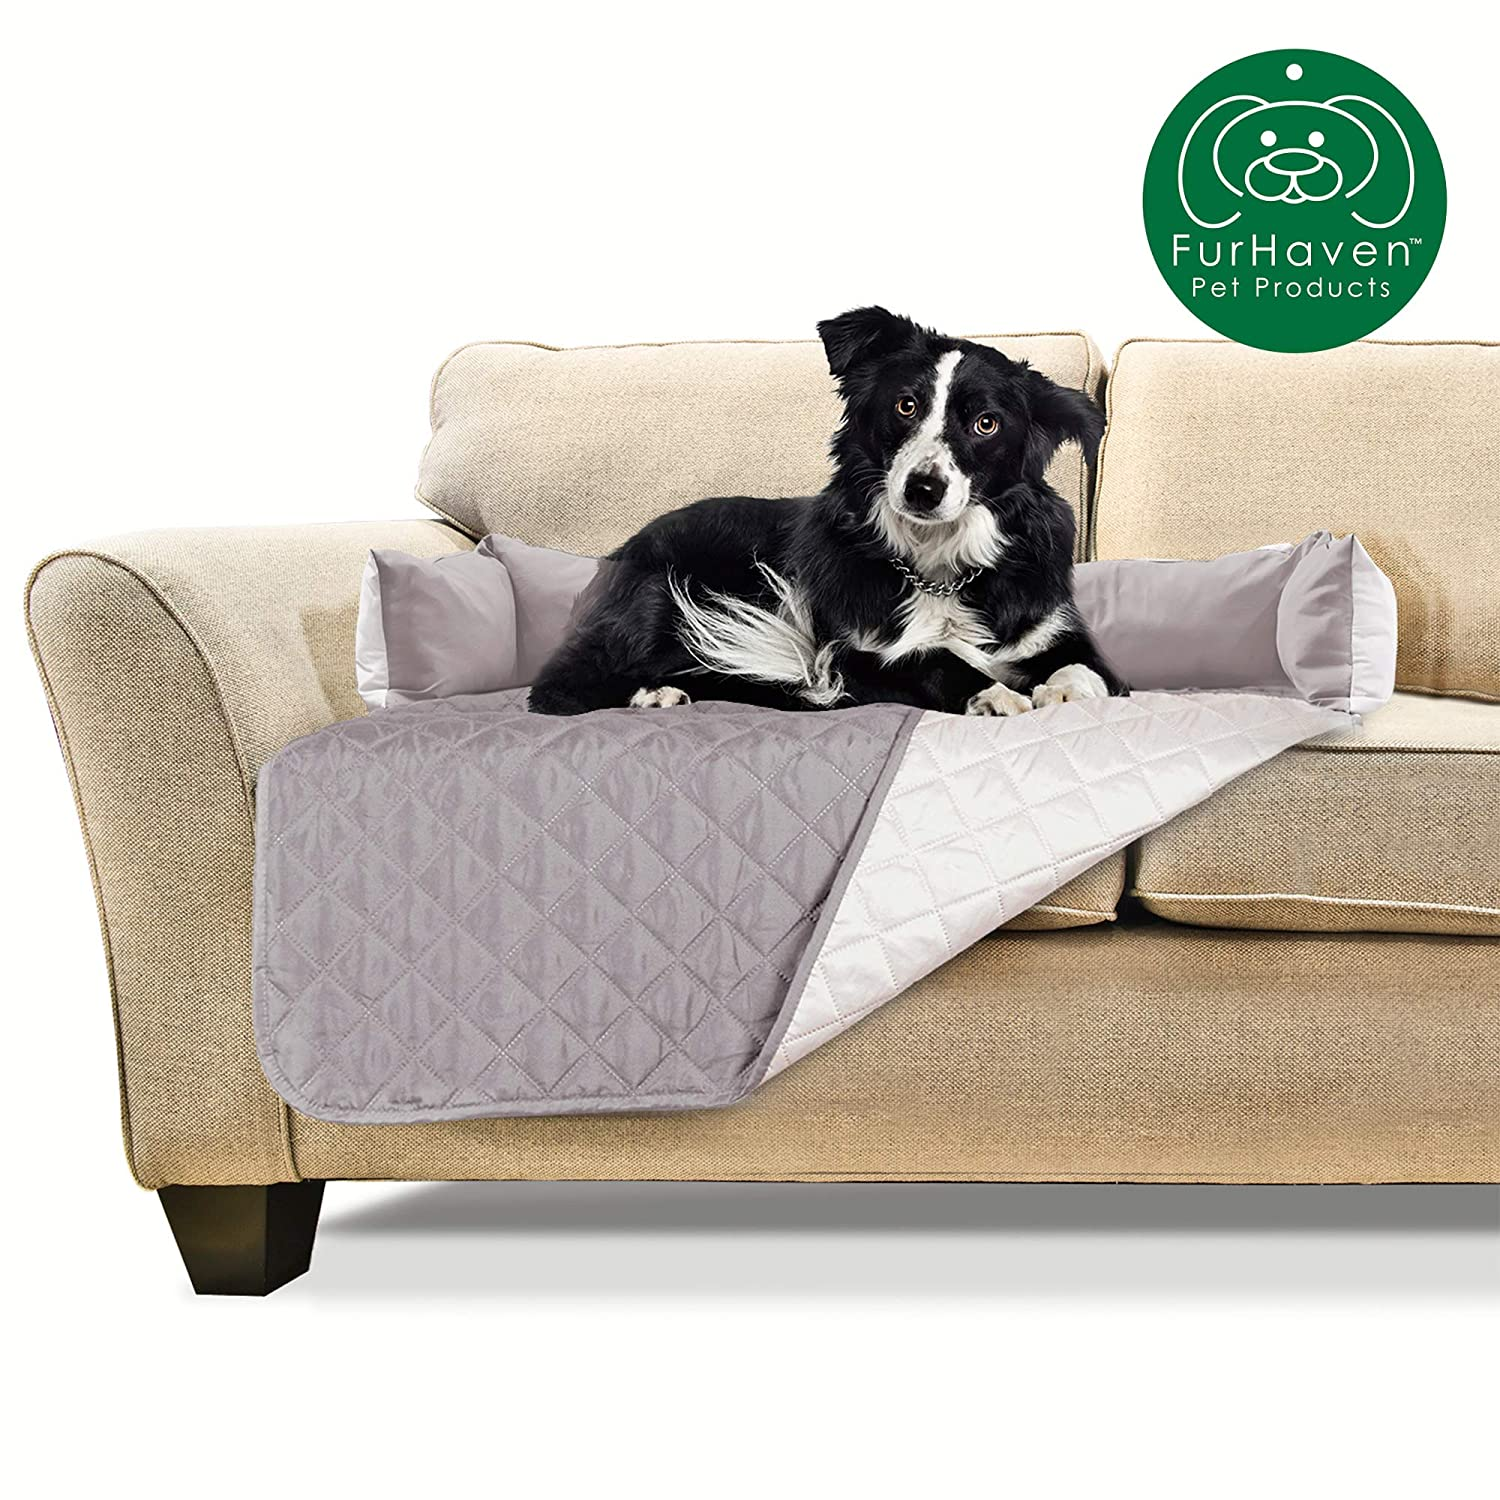 Marvelous Furhaven Pet Furniture Cover Two Tone Reversible Water Resistant Quilted Living Room Furniture Cover Protector Pet Bed For Dogs Cats Available Machost Co Dining Chair Design Ideas Machostcouk